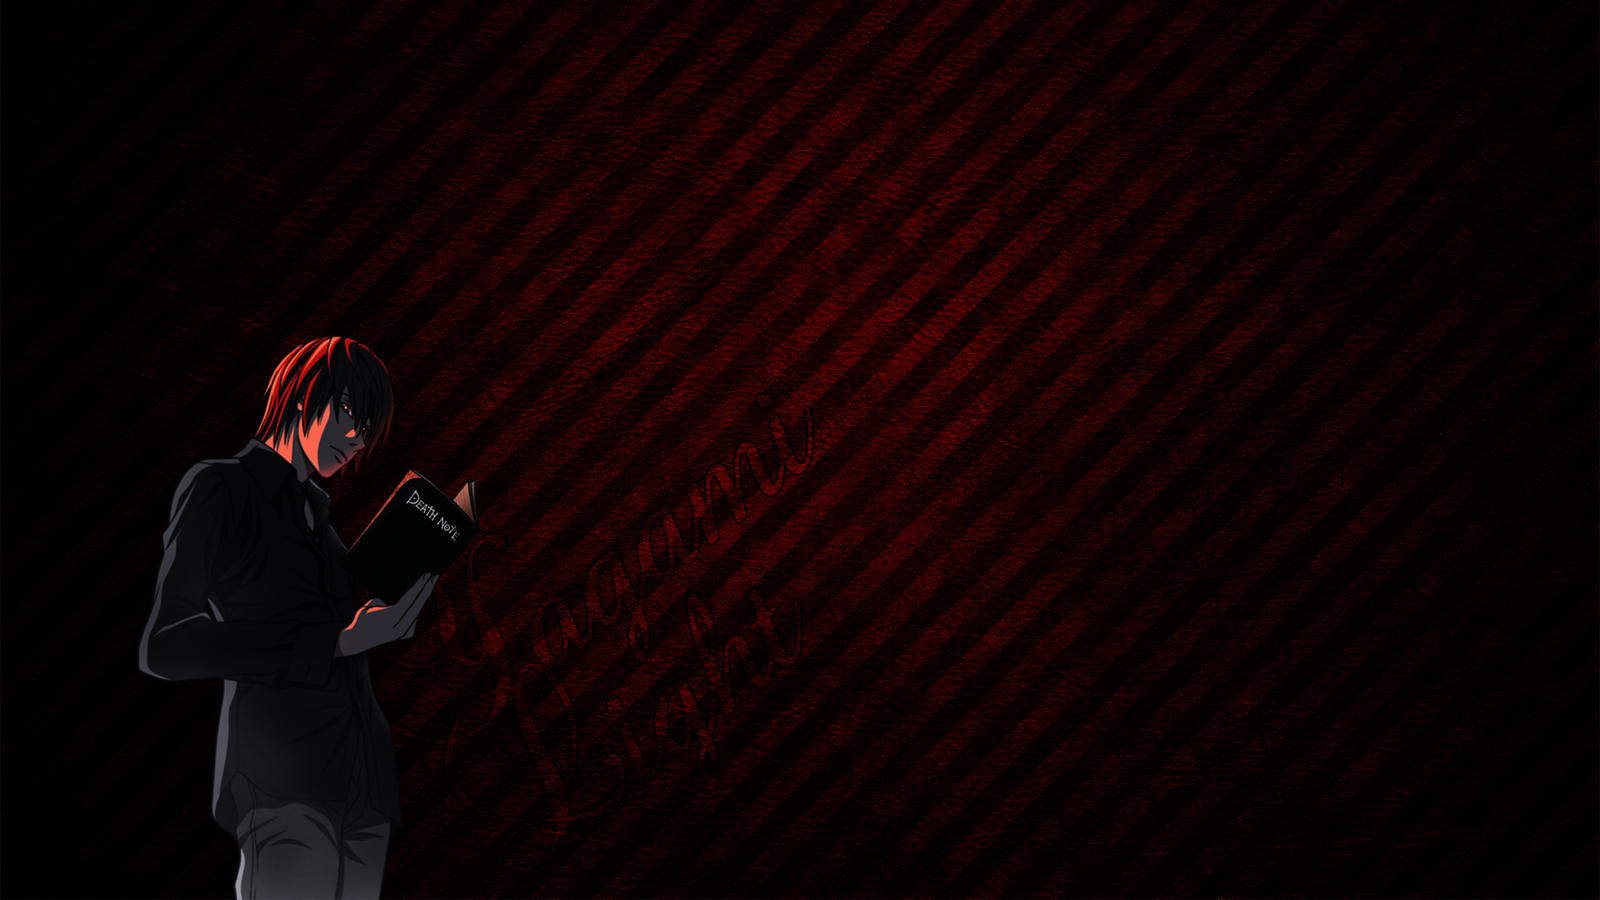 Death Note Yagami Light Wallpaper By Subkulturee On Deviantart